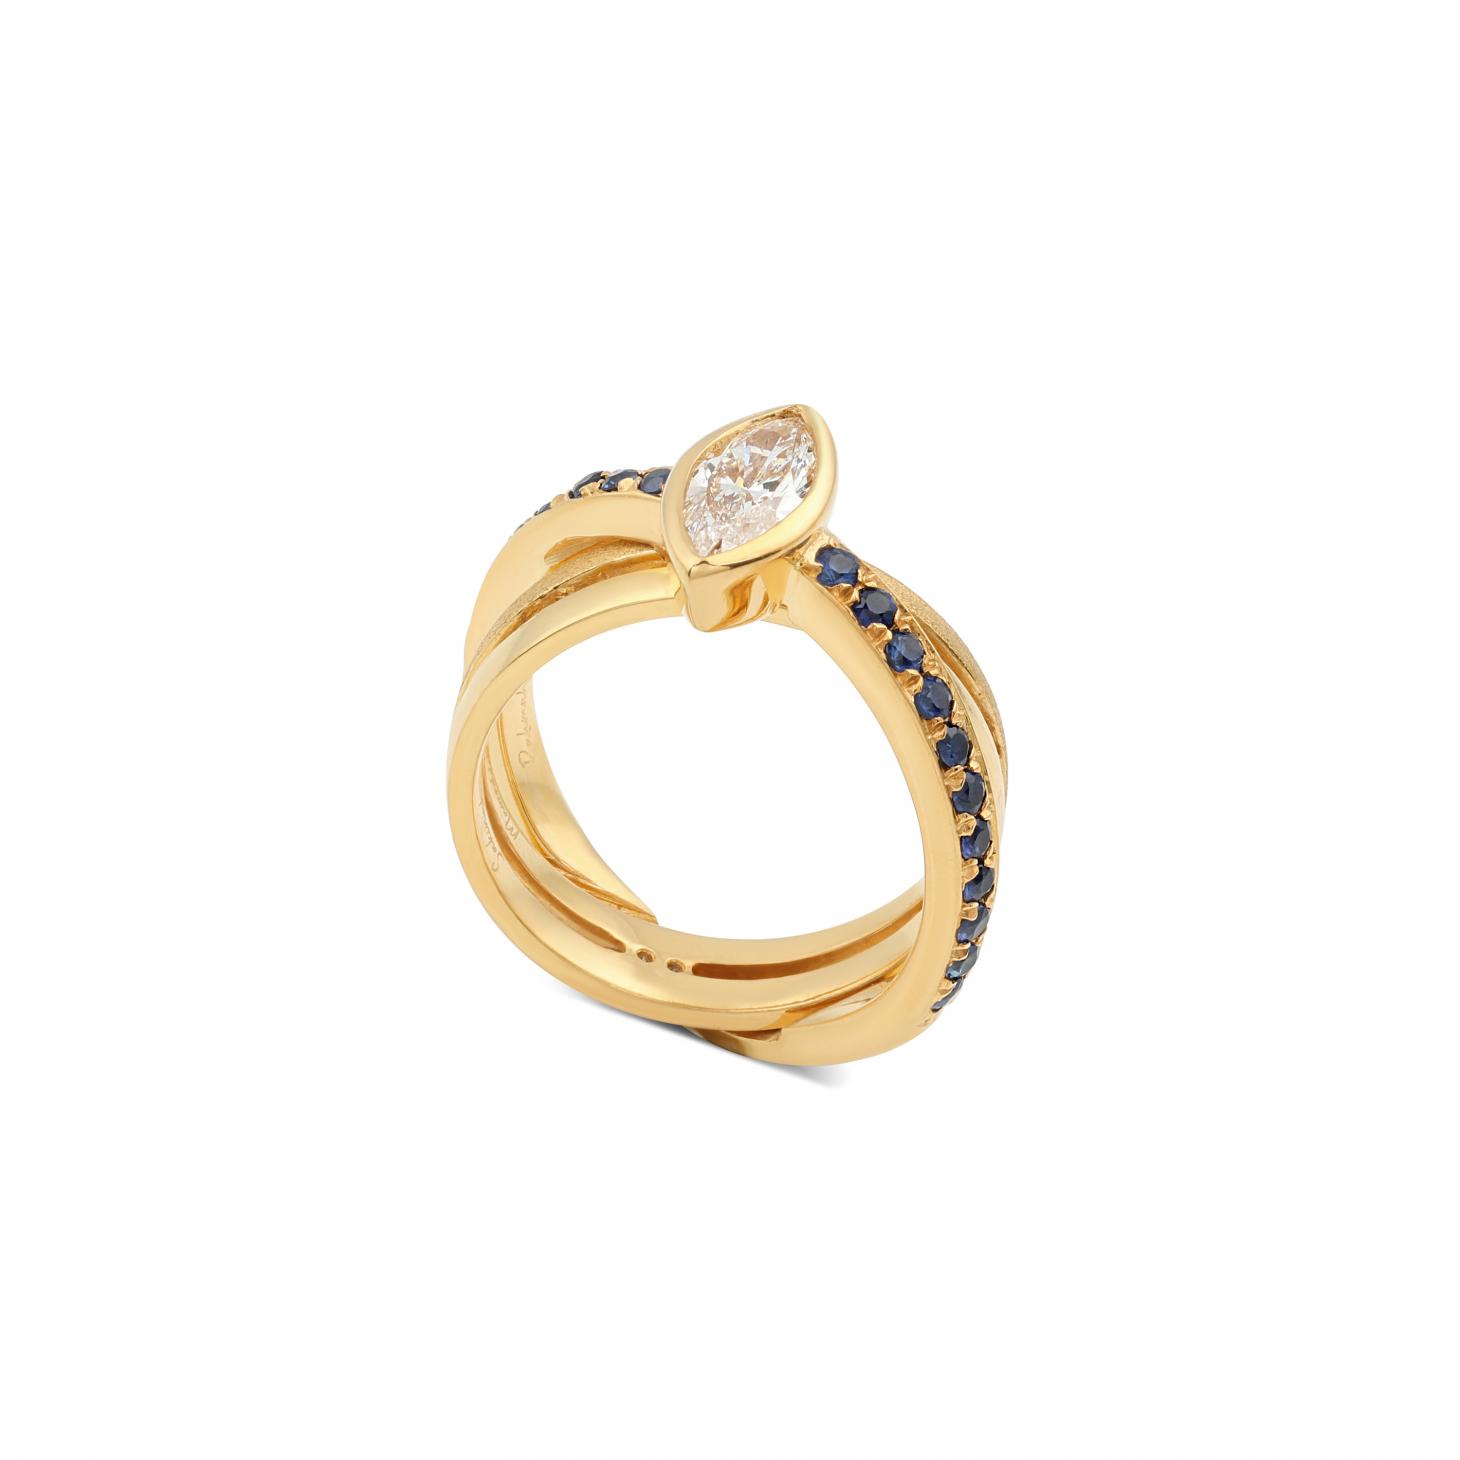 gold engagement ring with a blue stone